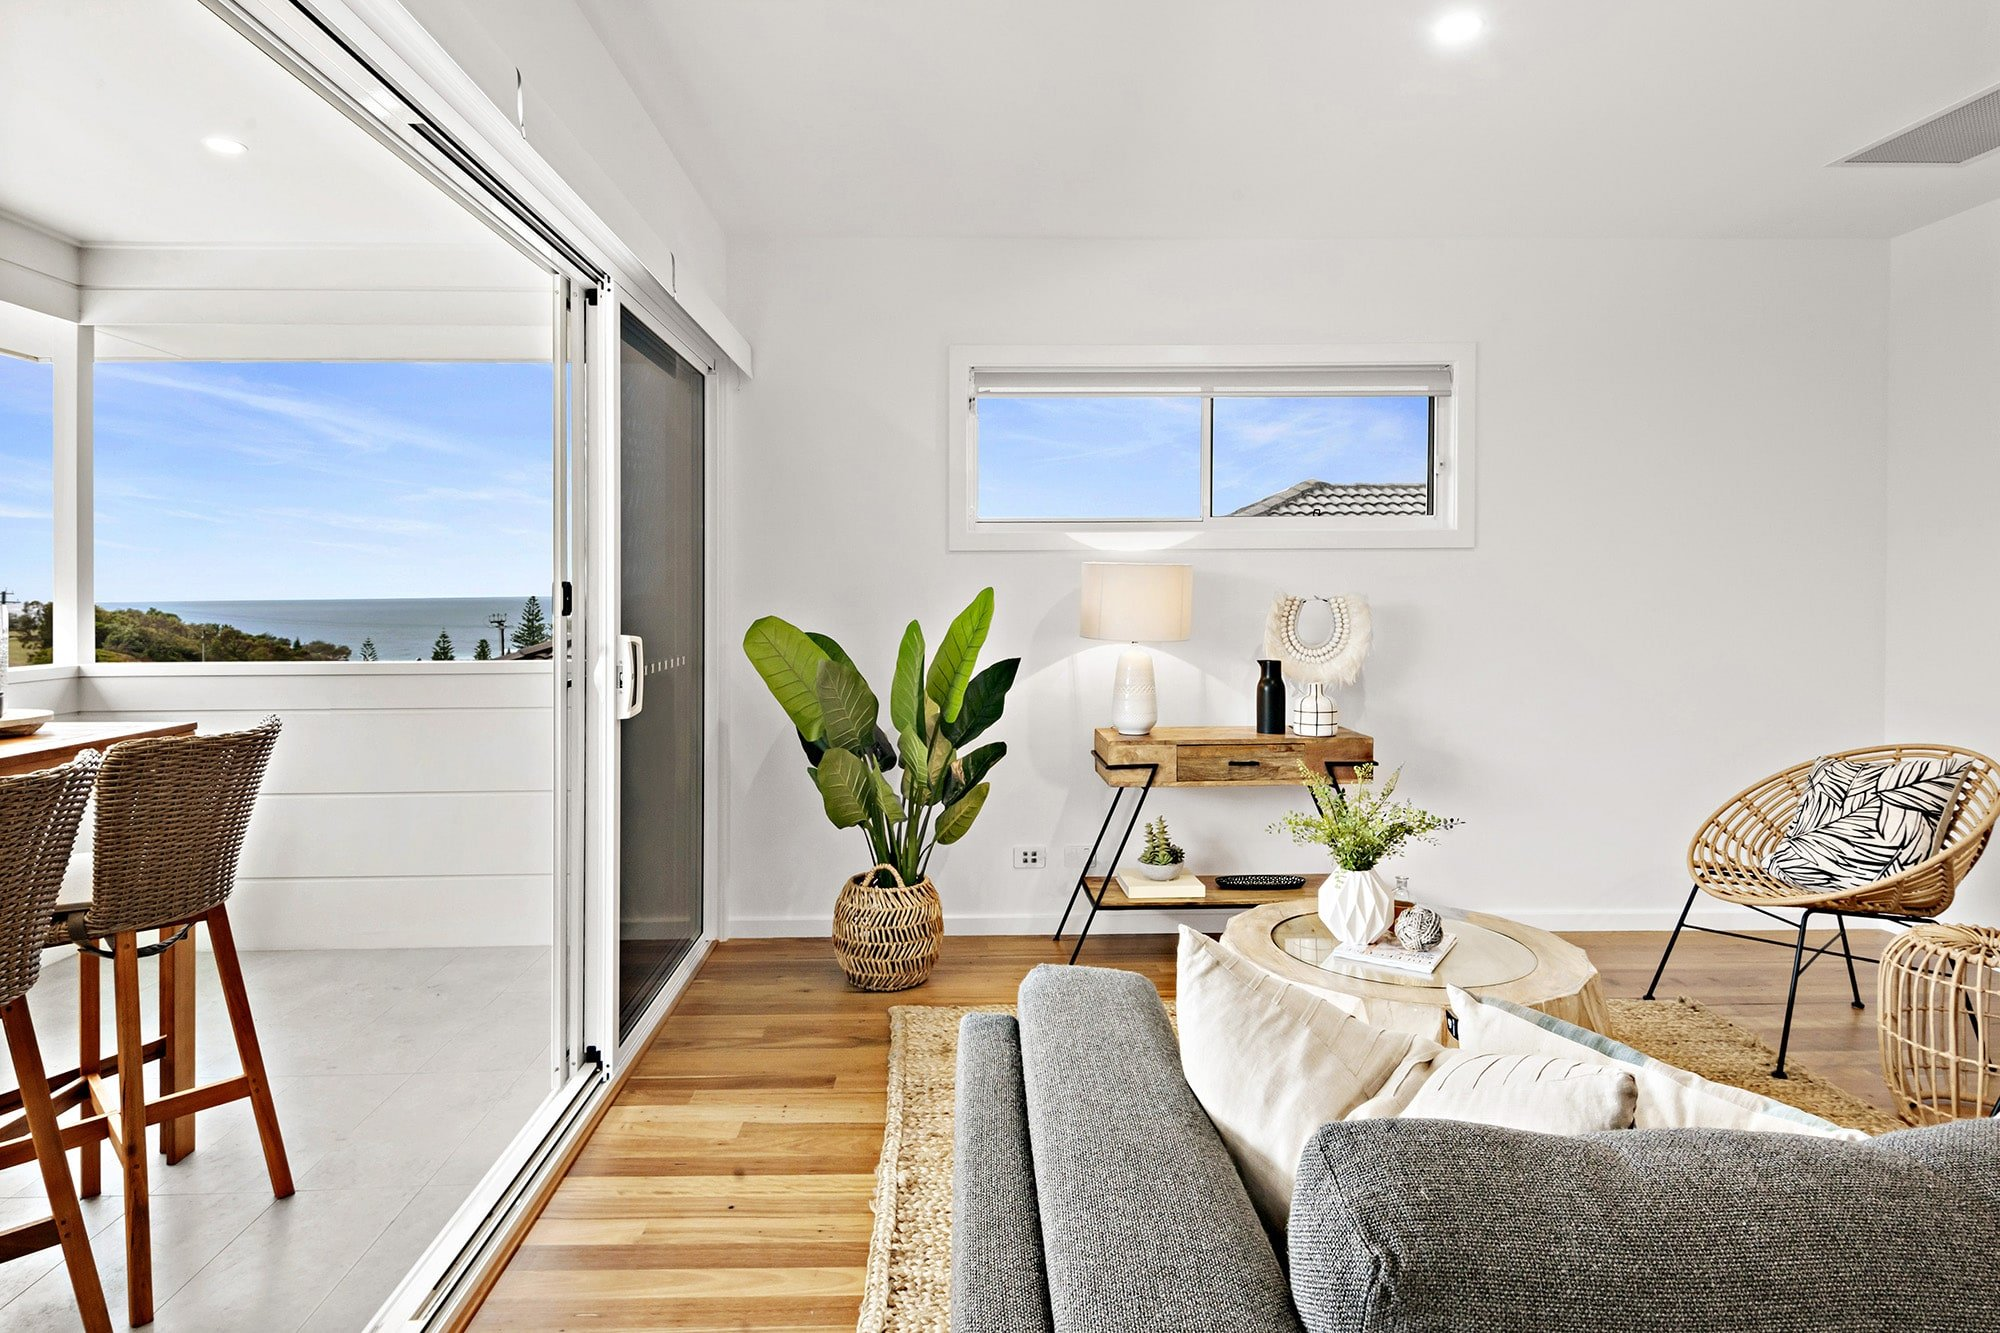 Bligh Street | Caves Beach - https://www.peonyandsilk.com.au/wp-content/uploads/2019/03/8-Living-Room.jpg